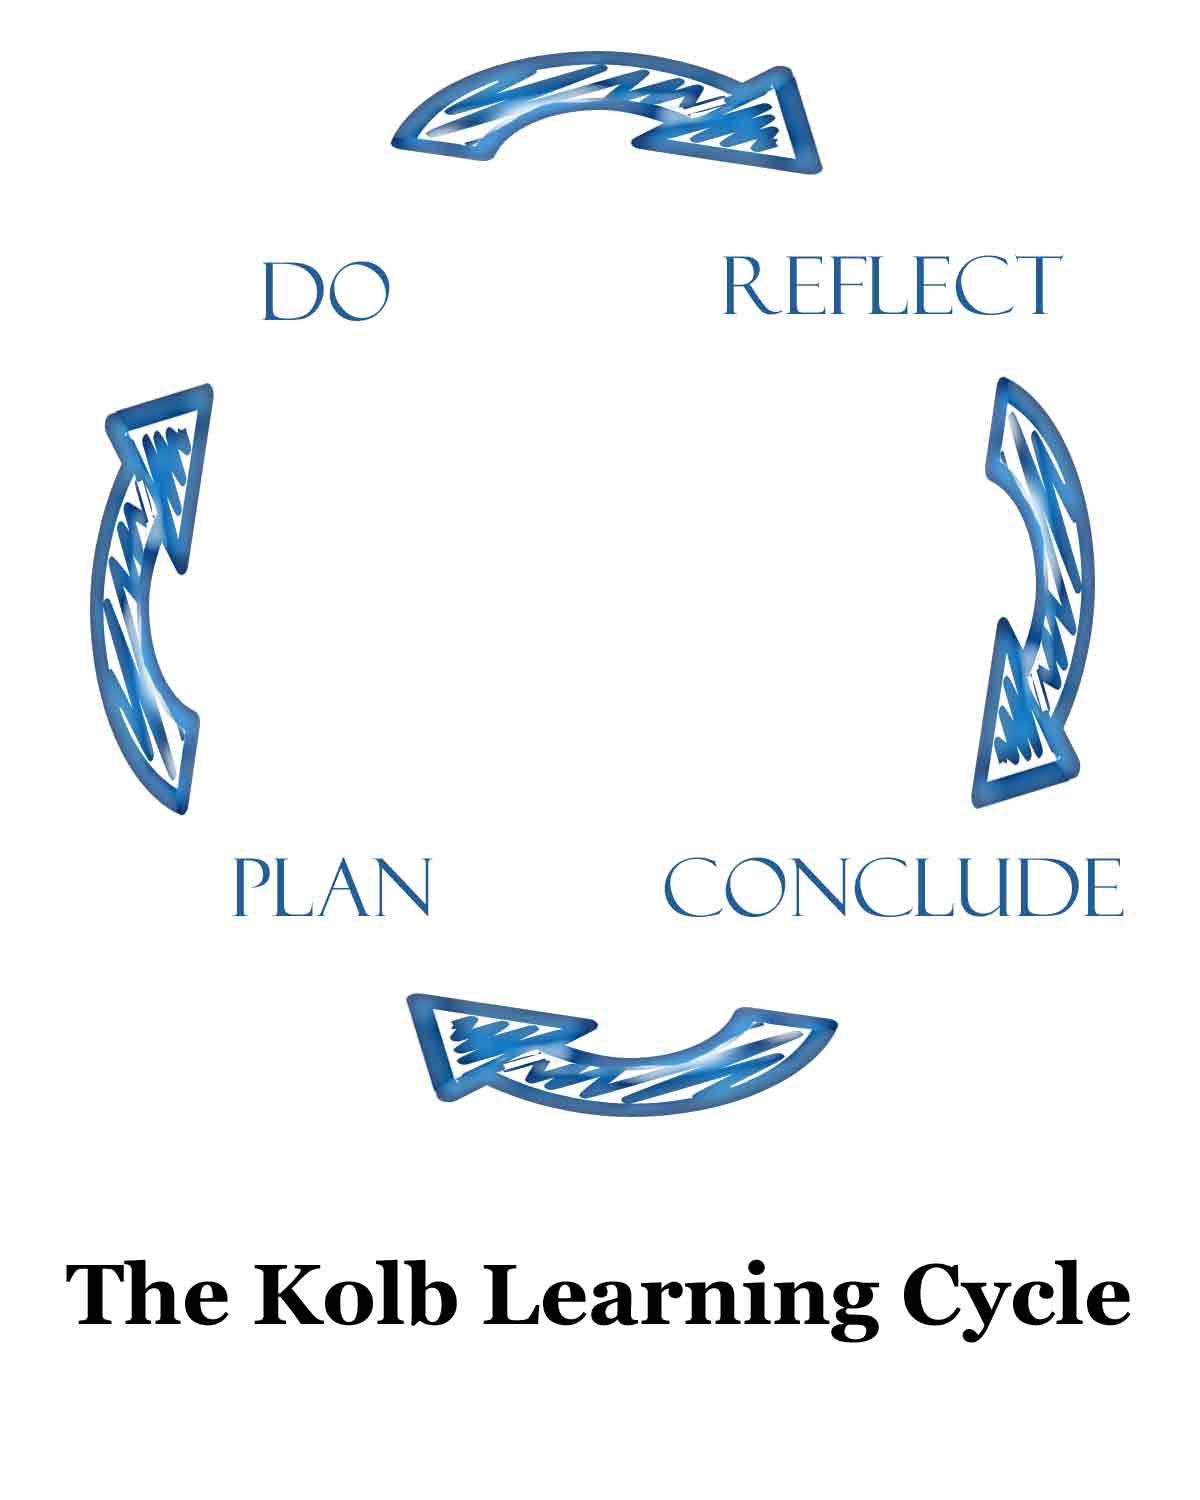 Kolb cycle